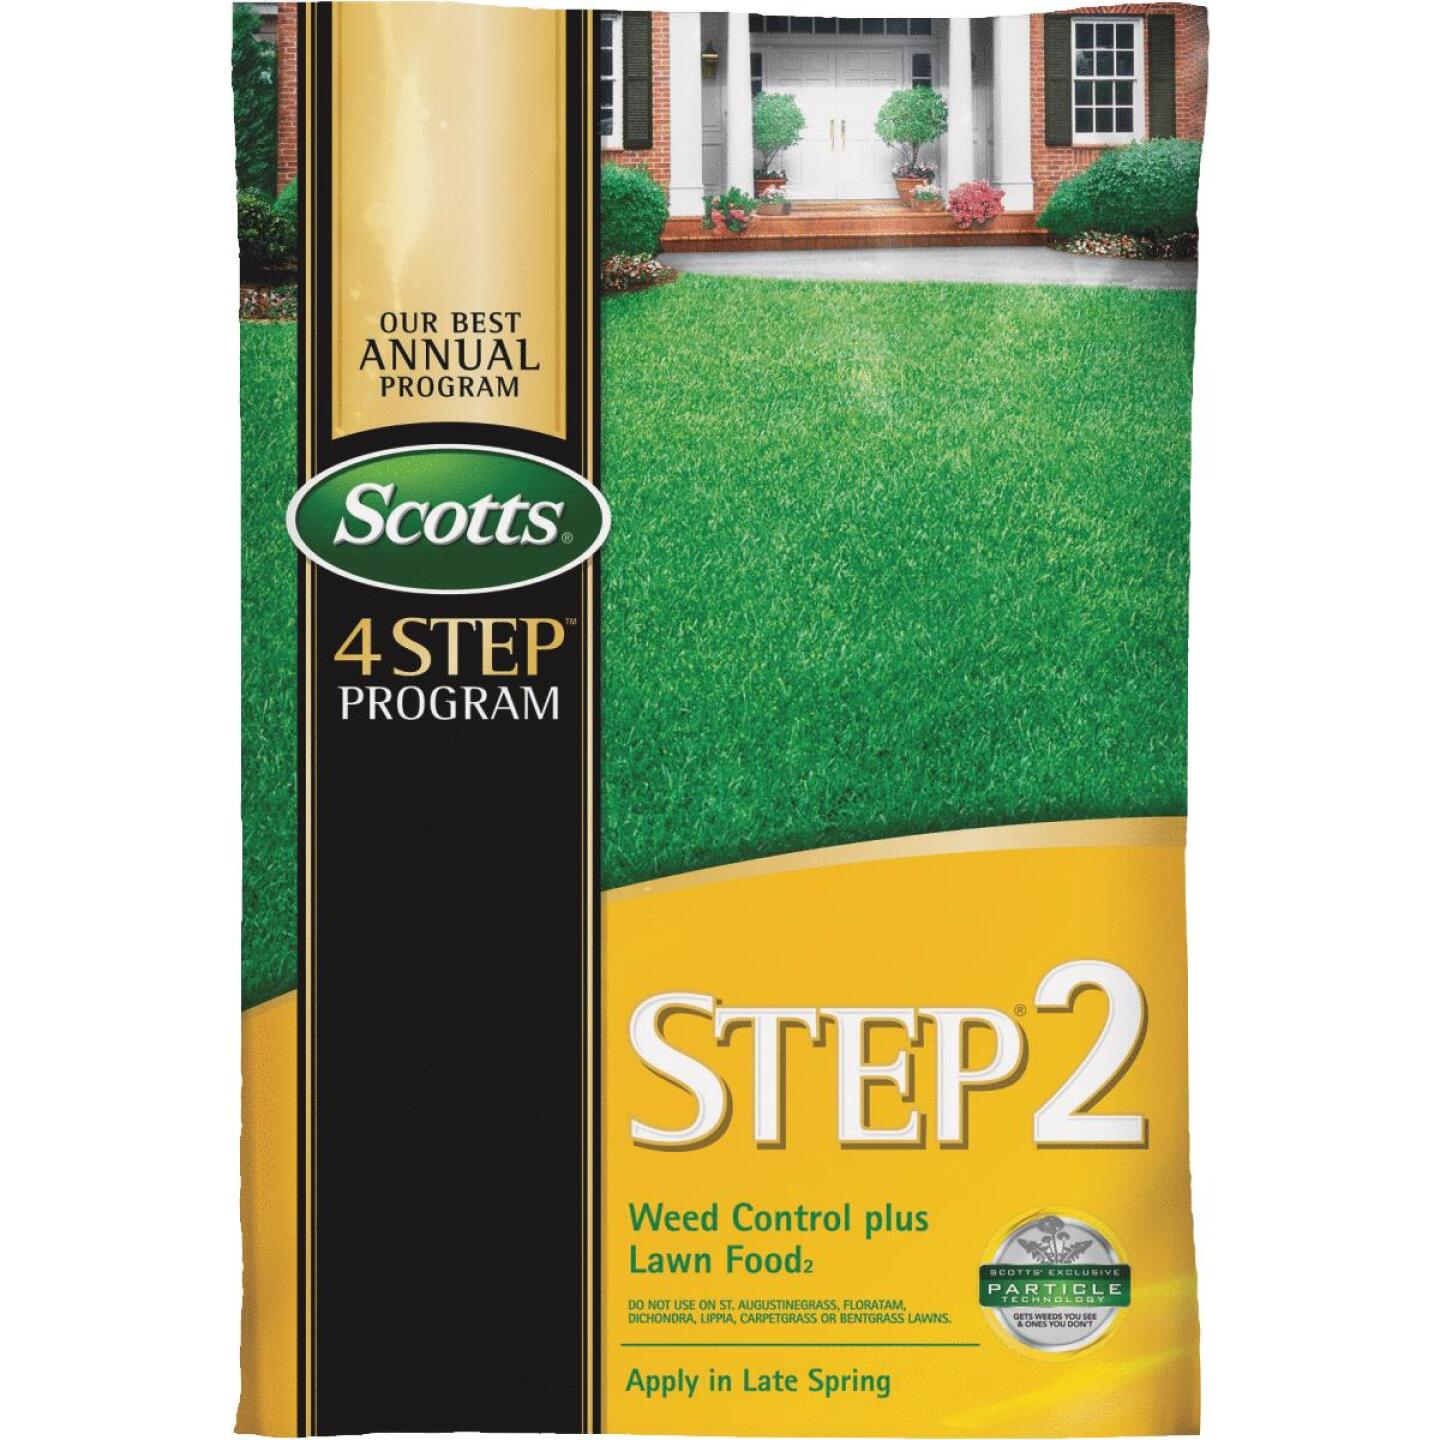 Scotts 4-Step Program Step 2 14.29 Lb. 5000 Sq. Ft. 28-0-3 Lawn Fertilizer with Weed Killer Image 1